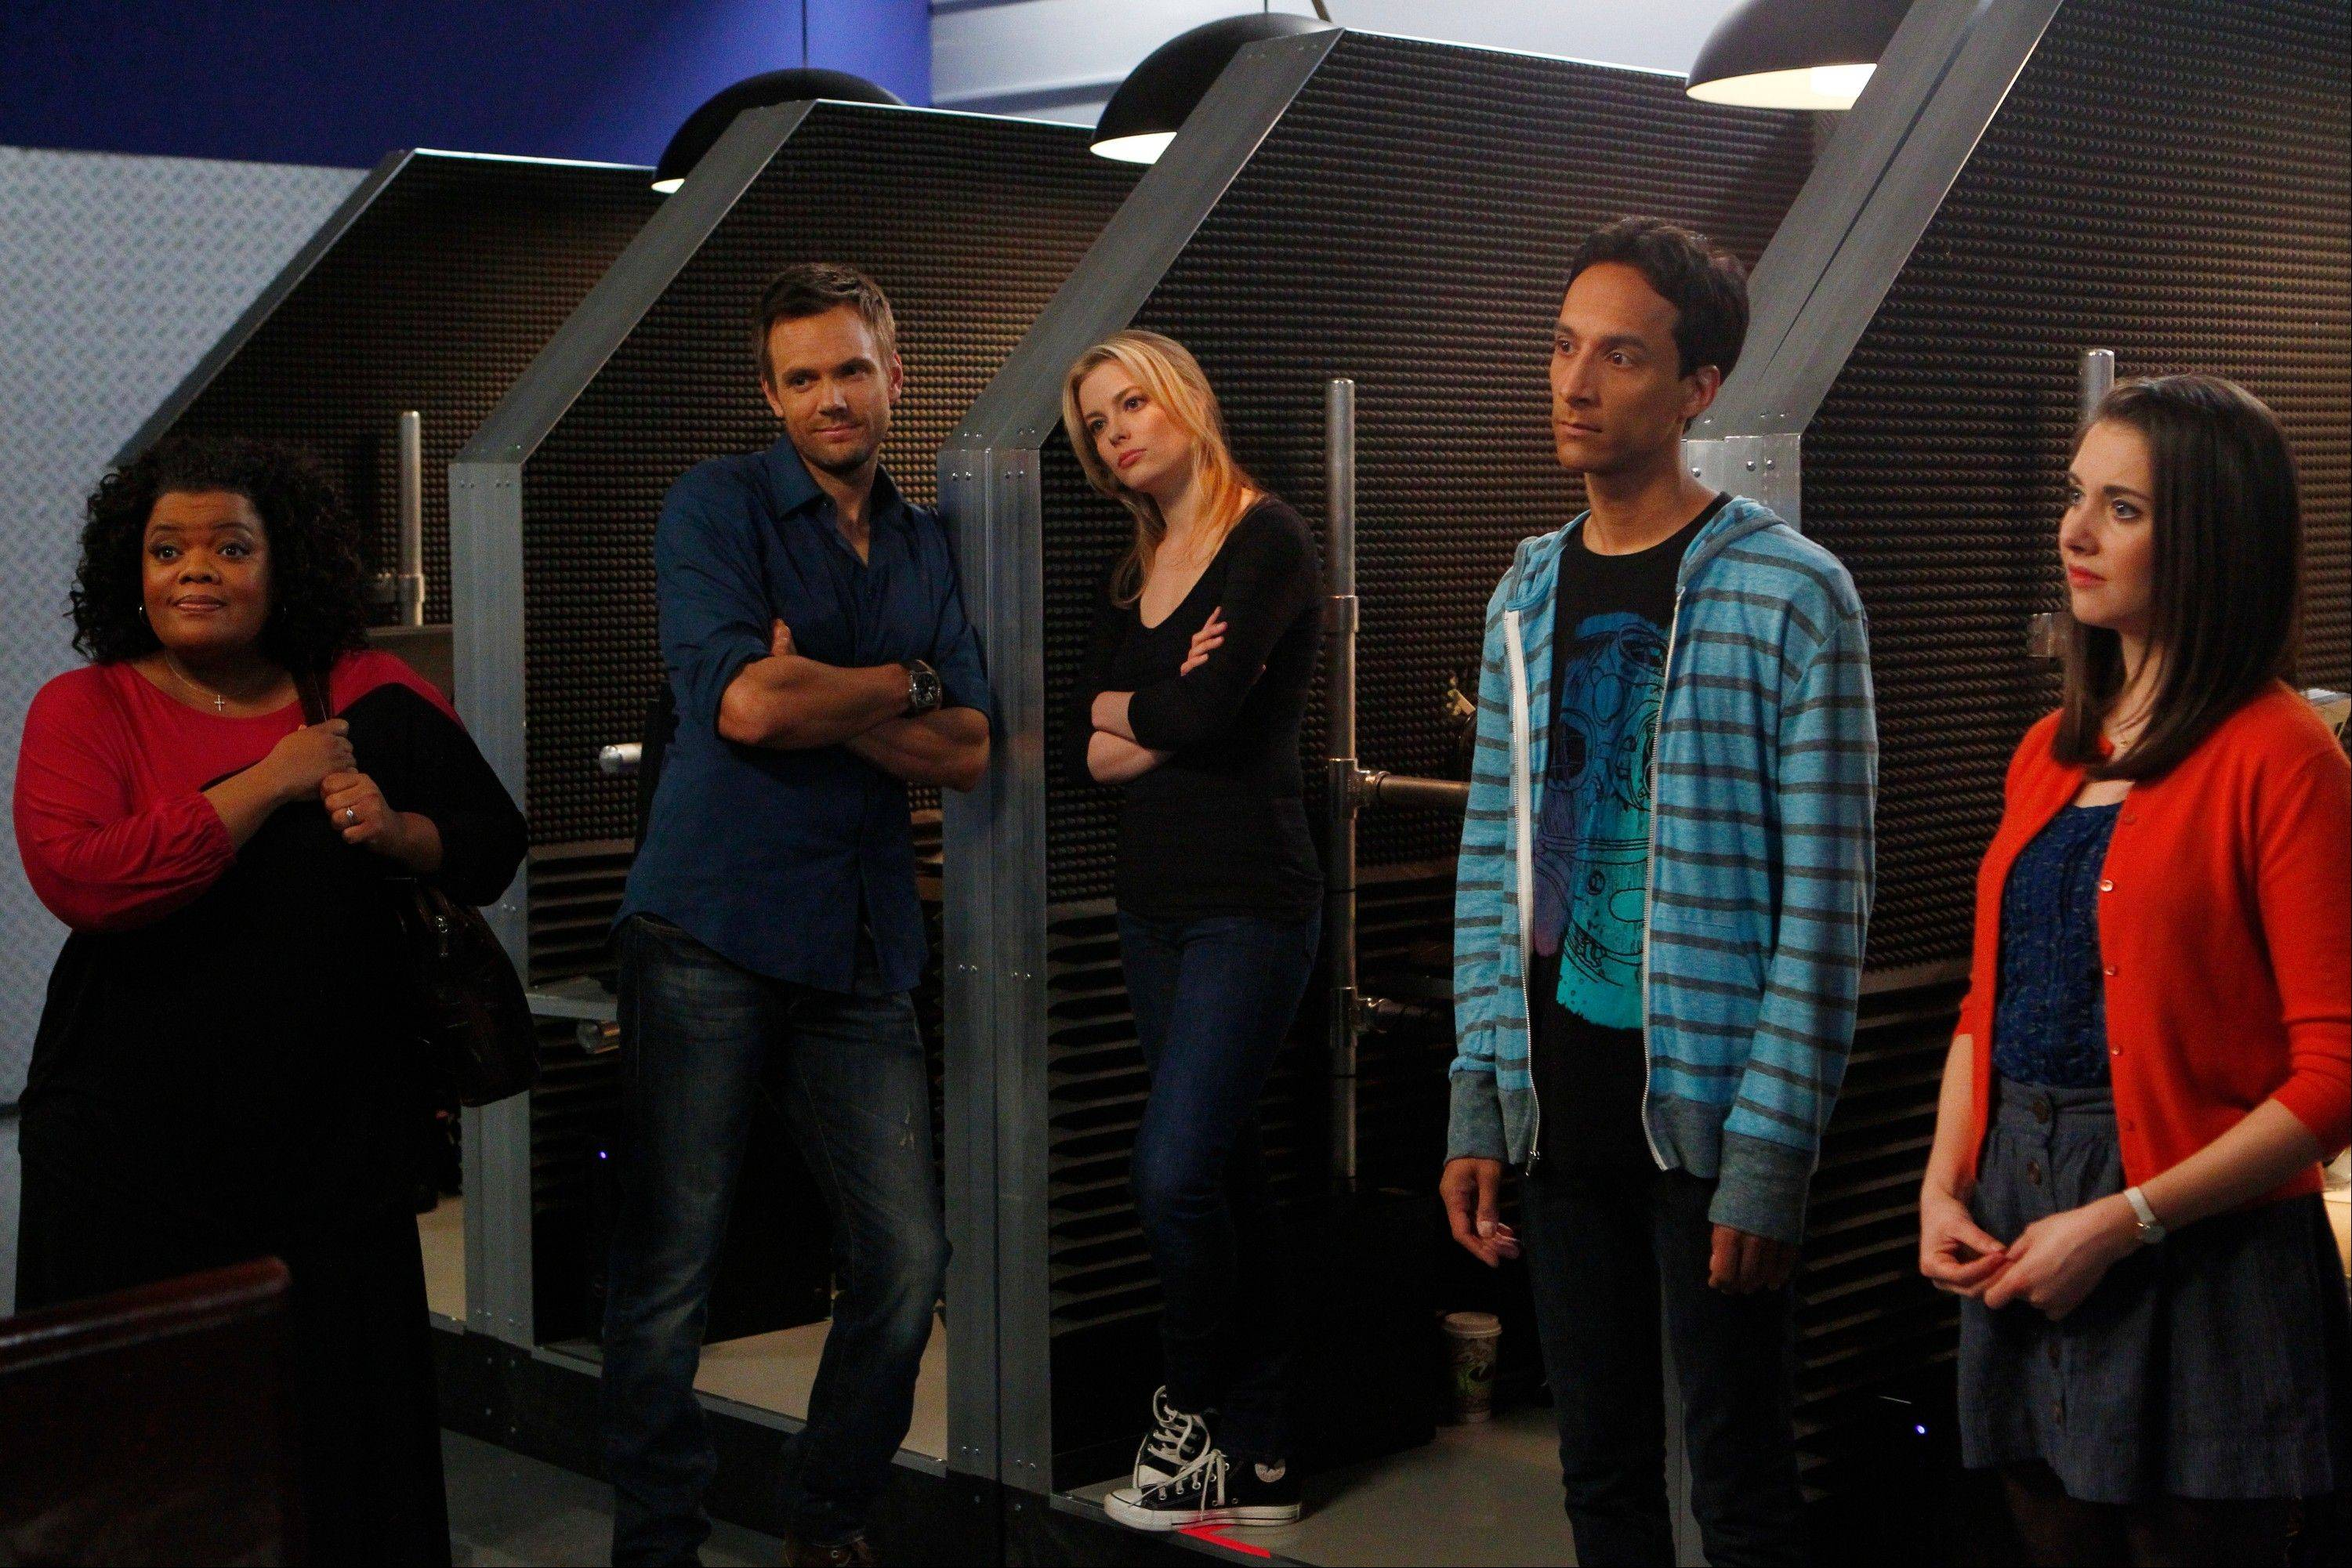 Cast members from �Community,� from left, Yvette Nicole Brown as Shirley, Joel McHale as Jeff, Gillian Jacobs as Britta, Danny Pudi as Abed, and Alison Brie as Annie. It�s turbulent times for the NBC comedy.